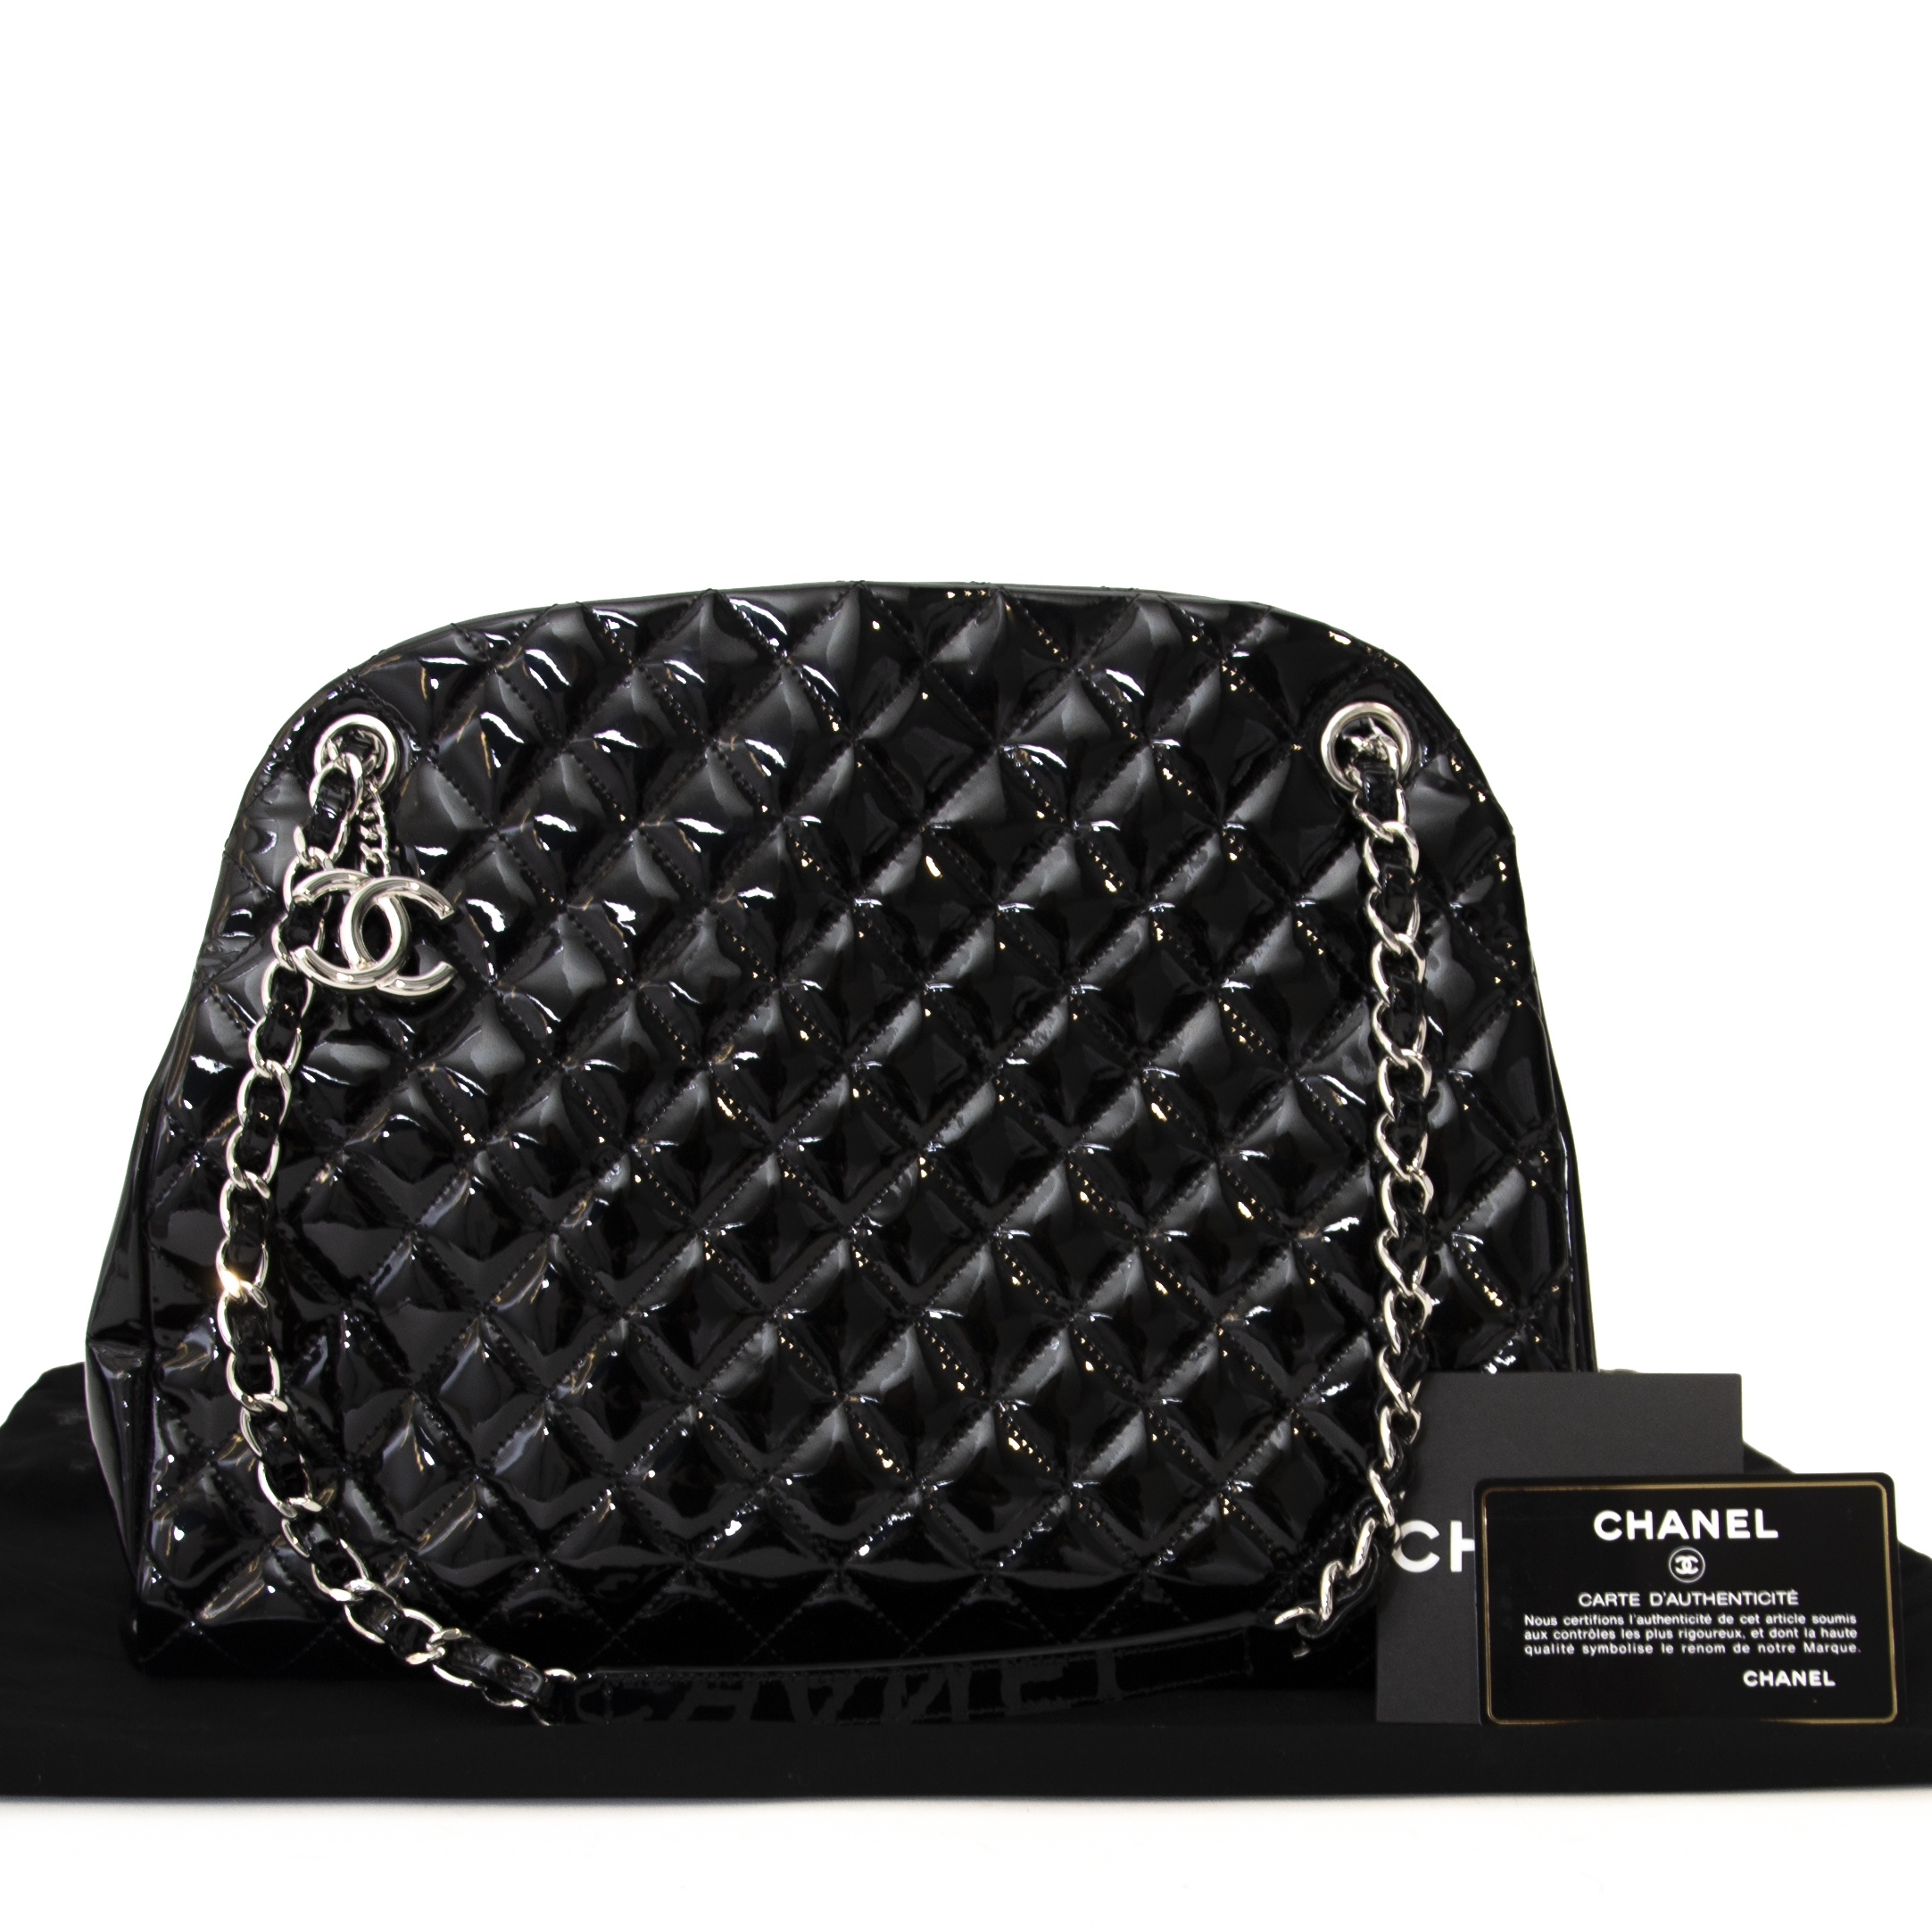 b57066581d7f Fair Chanel Black Patent Leather Quilted Bag. Chanel tweedehands tas  authentiek bij LabelLOV. Chanel in